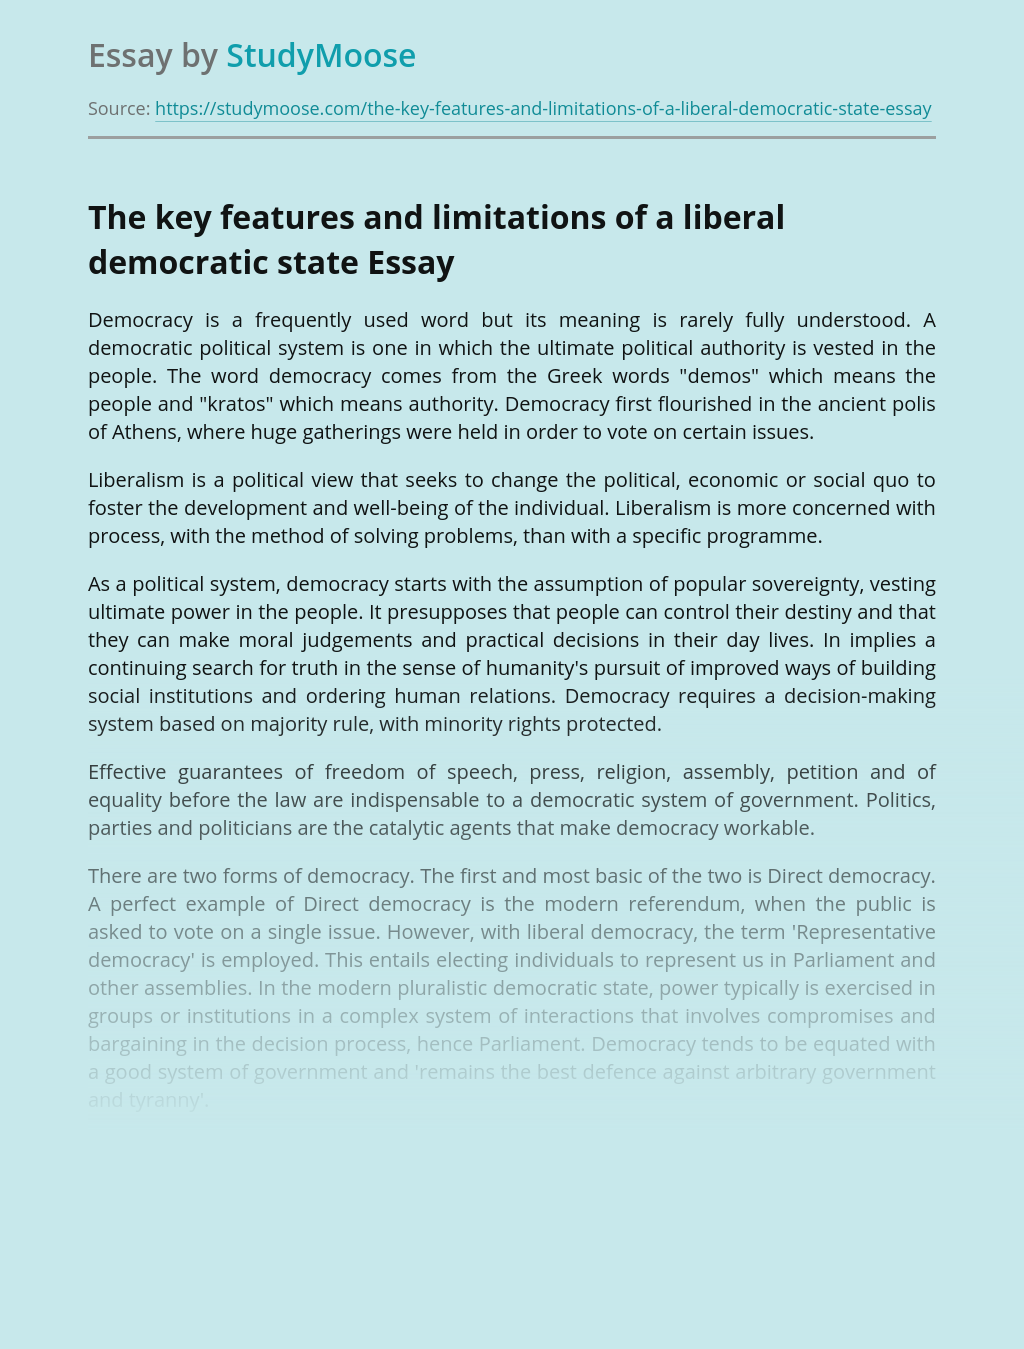 The key features and limitations of a liberal democratic state